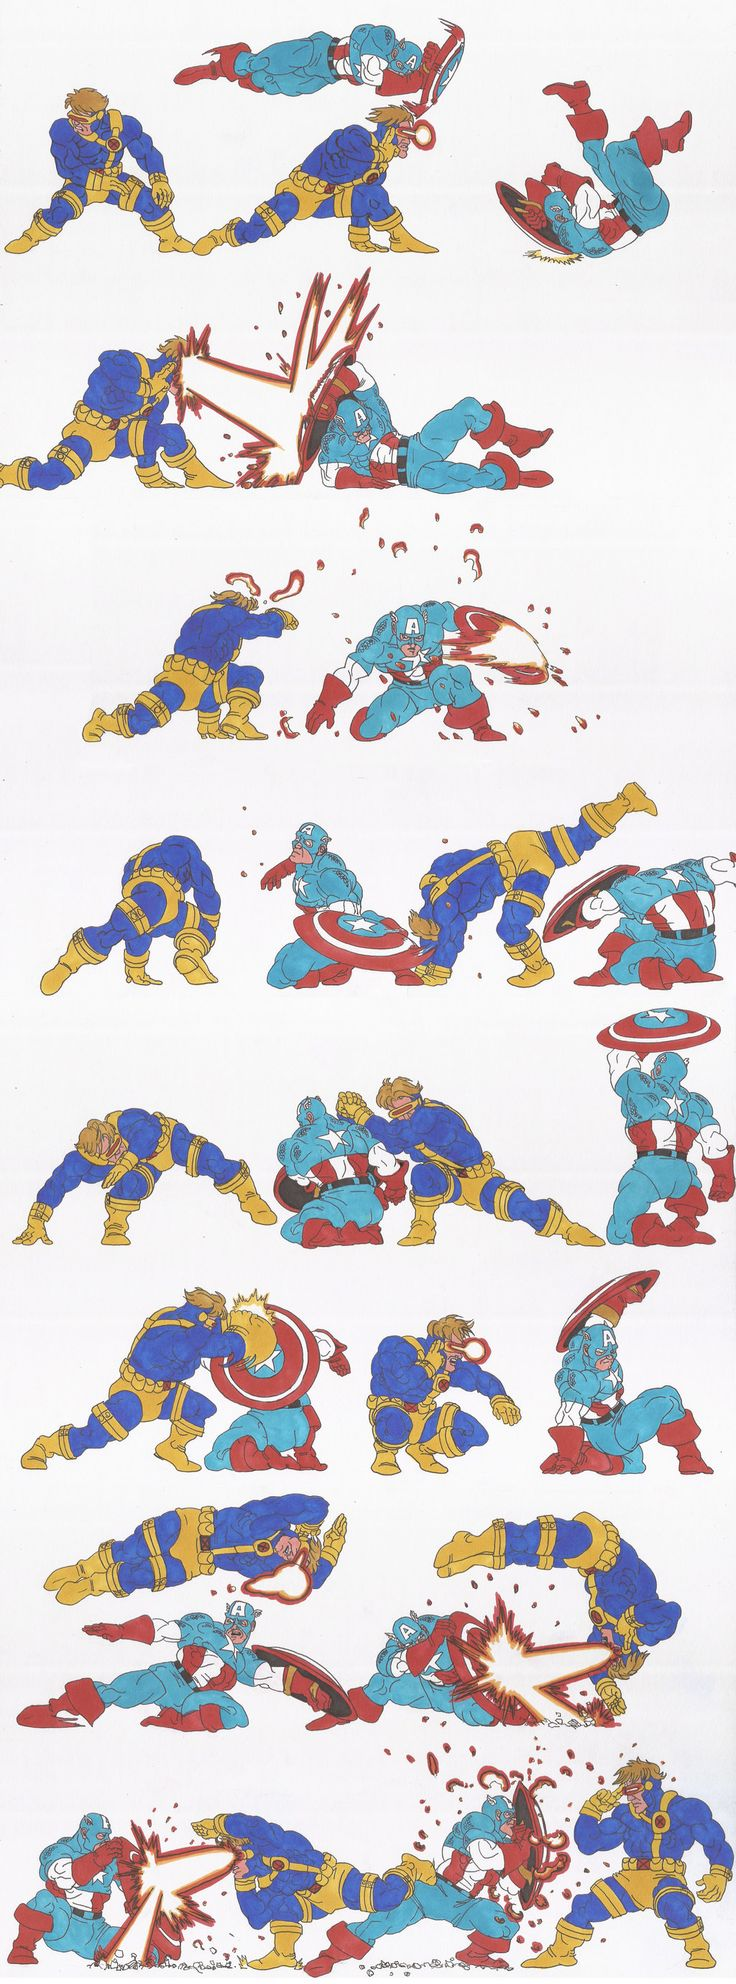 marvel_doodles_02_Cap Vs Cyclops_oct2013 by AlexBaxtheDarkSide